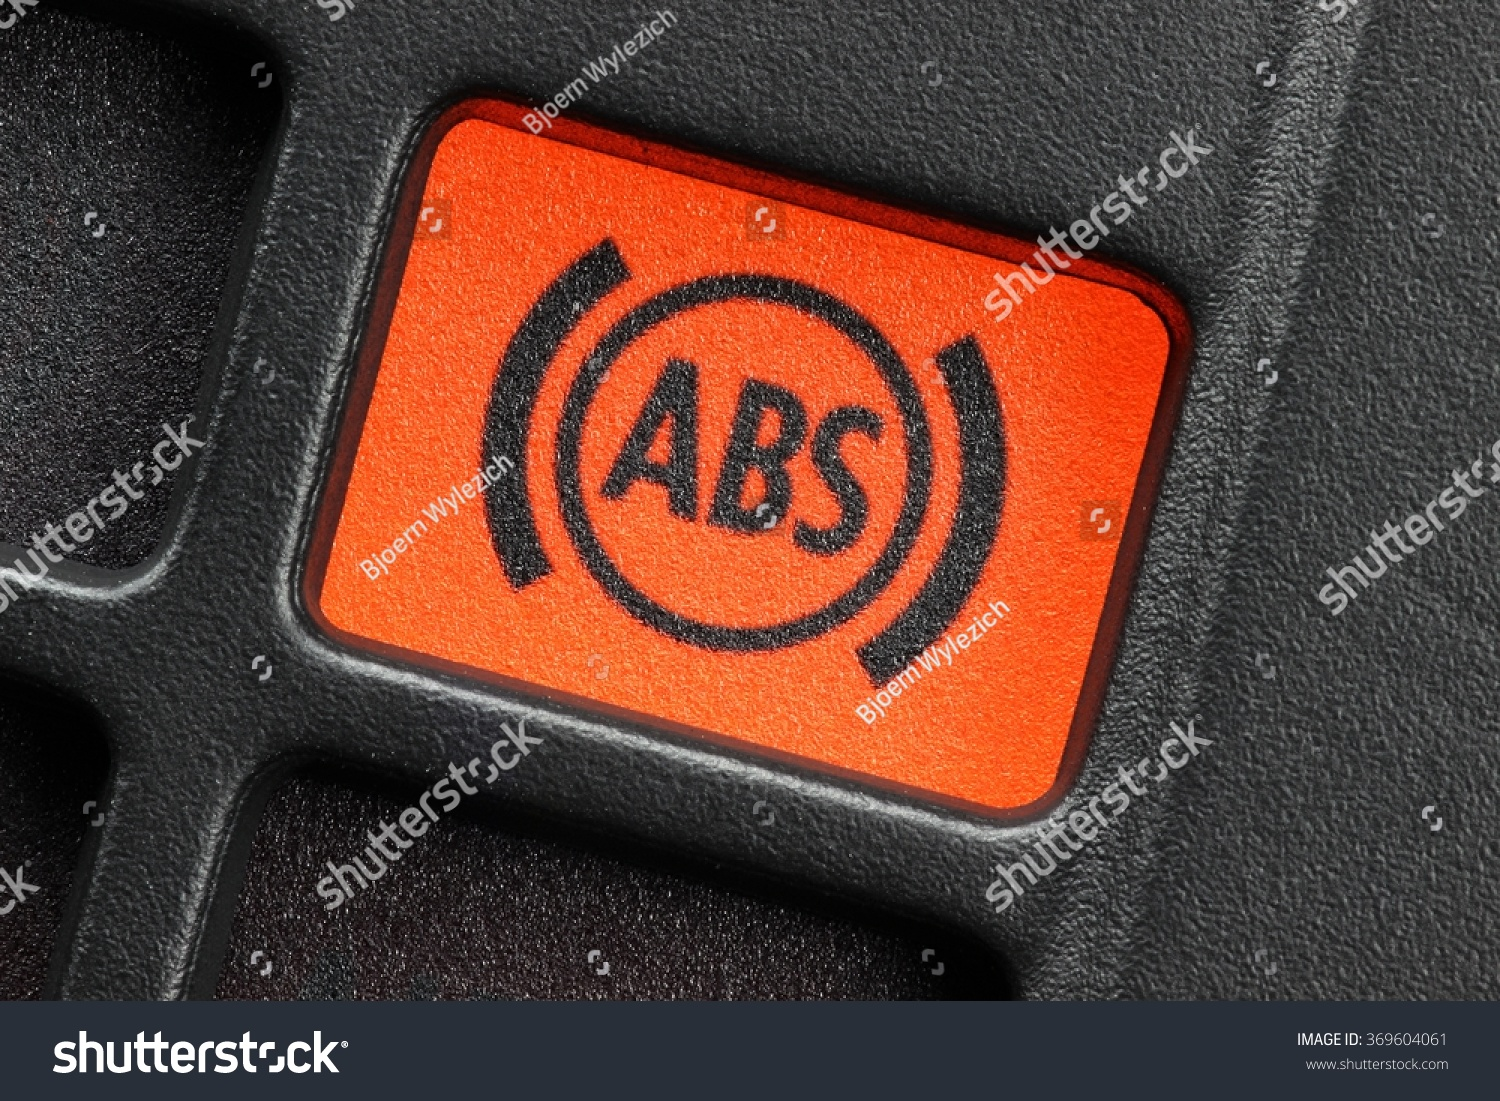 Abs Warning Light Car Dashboard Stock Photo Edit Now 369604061